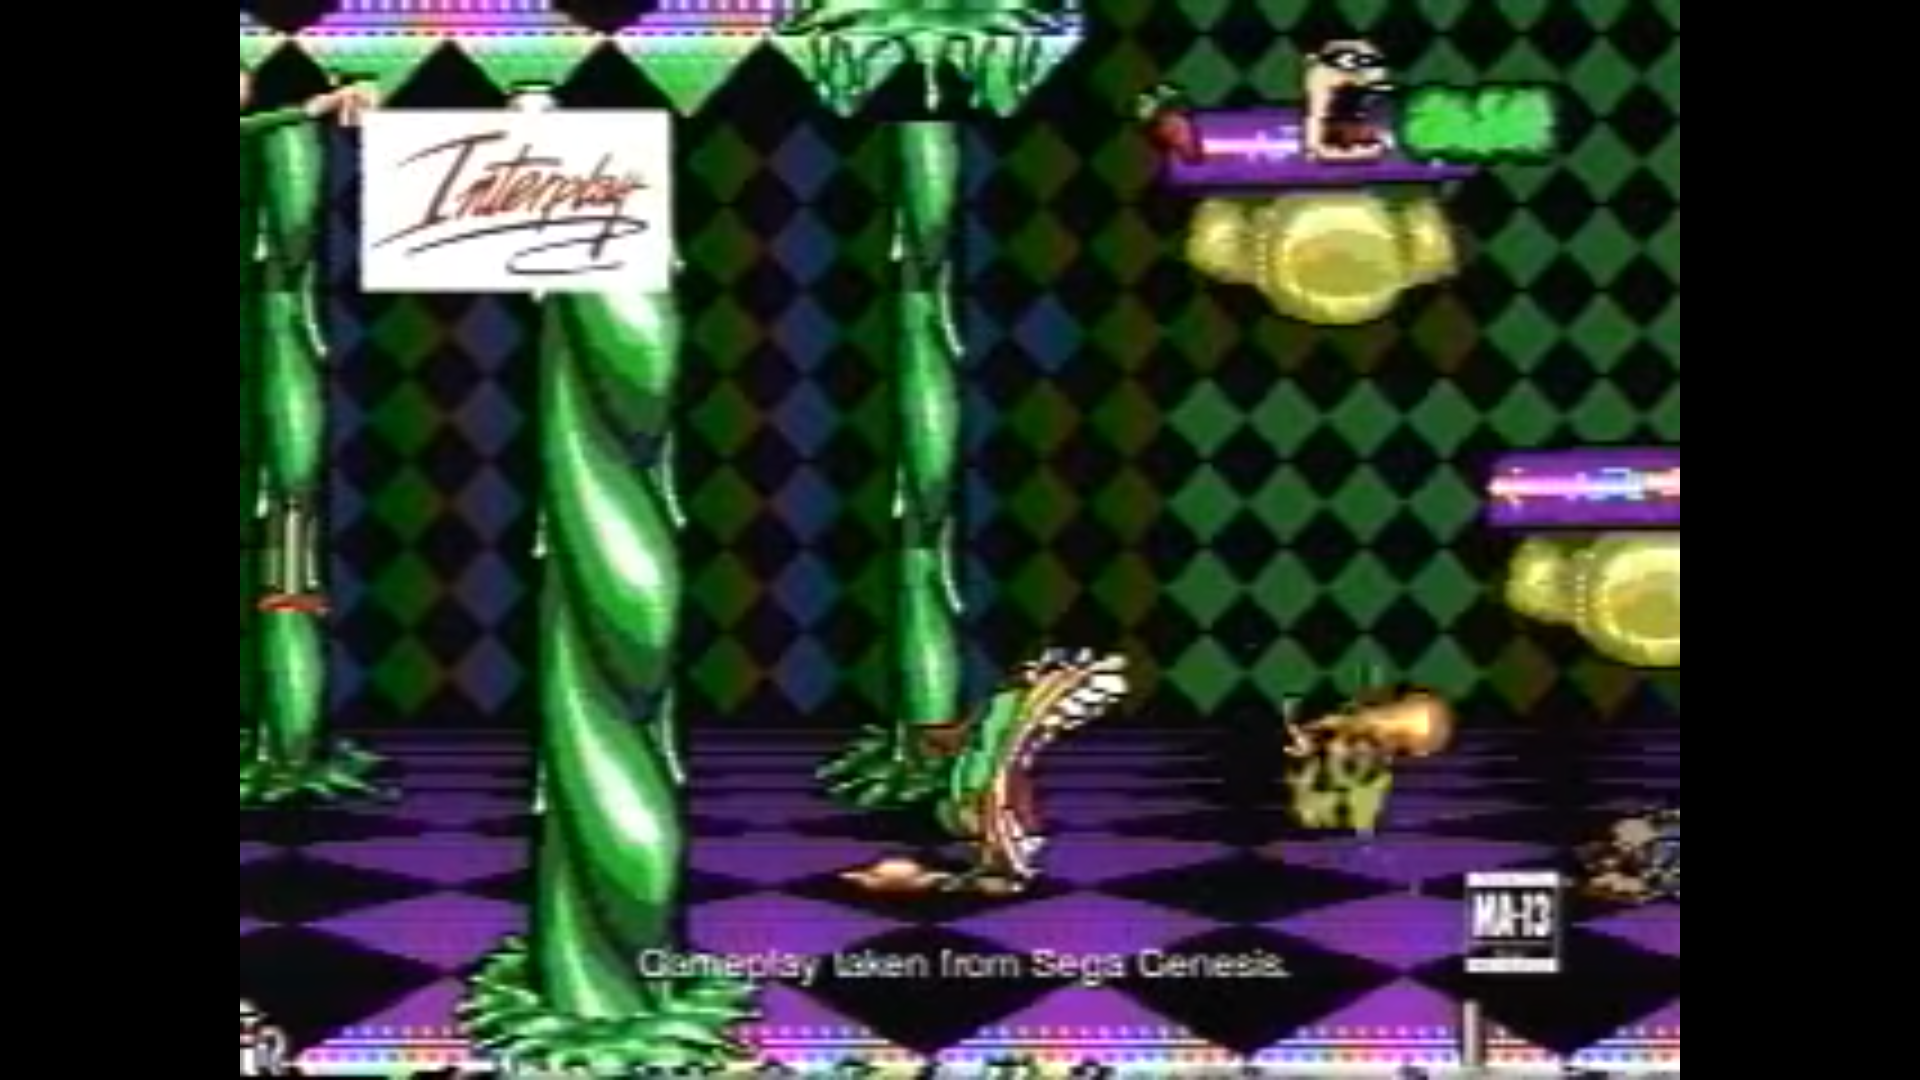 Boogerman: A Pick and Flick Adventure (1994) (Video Game) (Commercial)